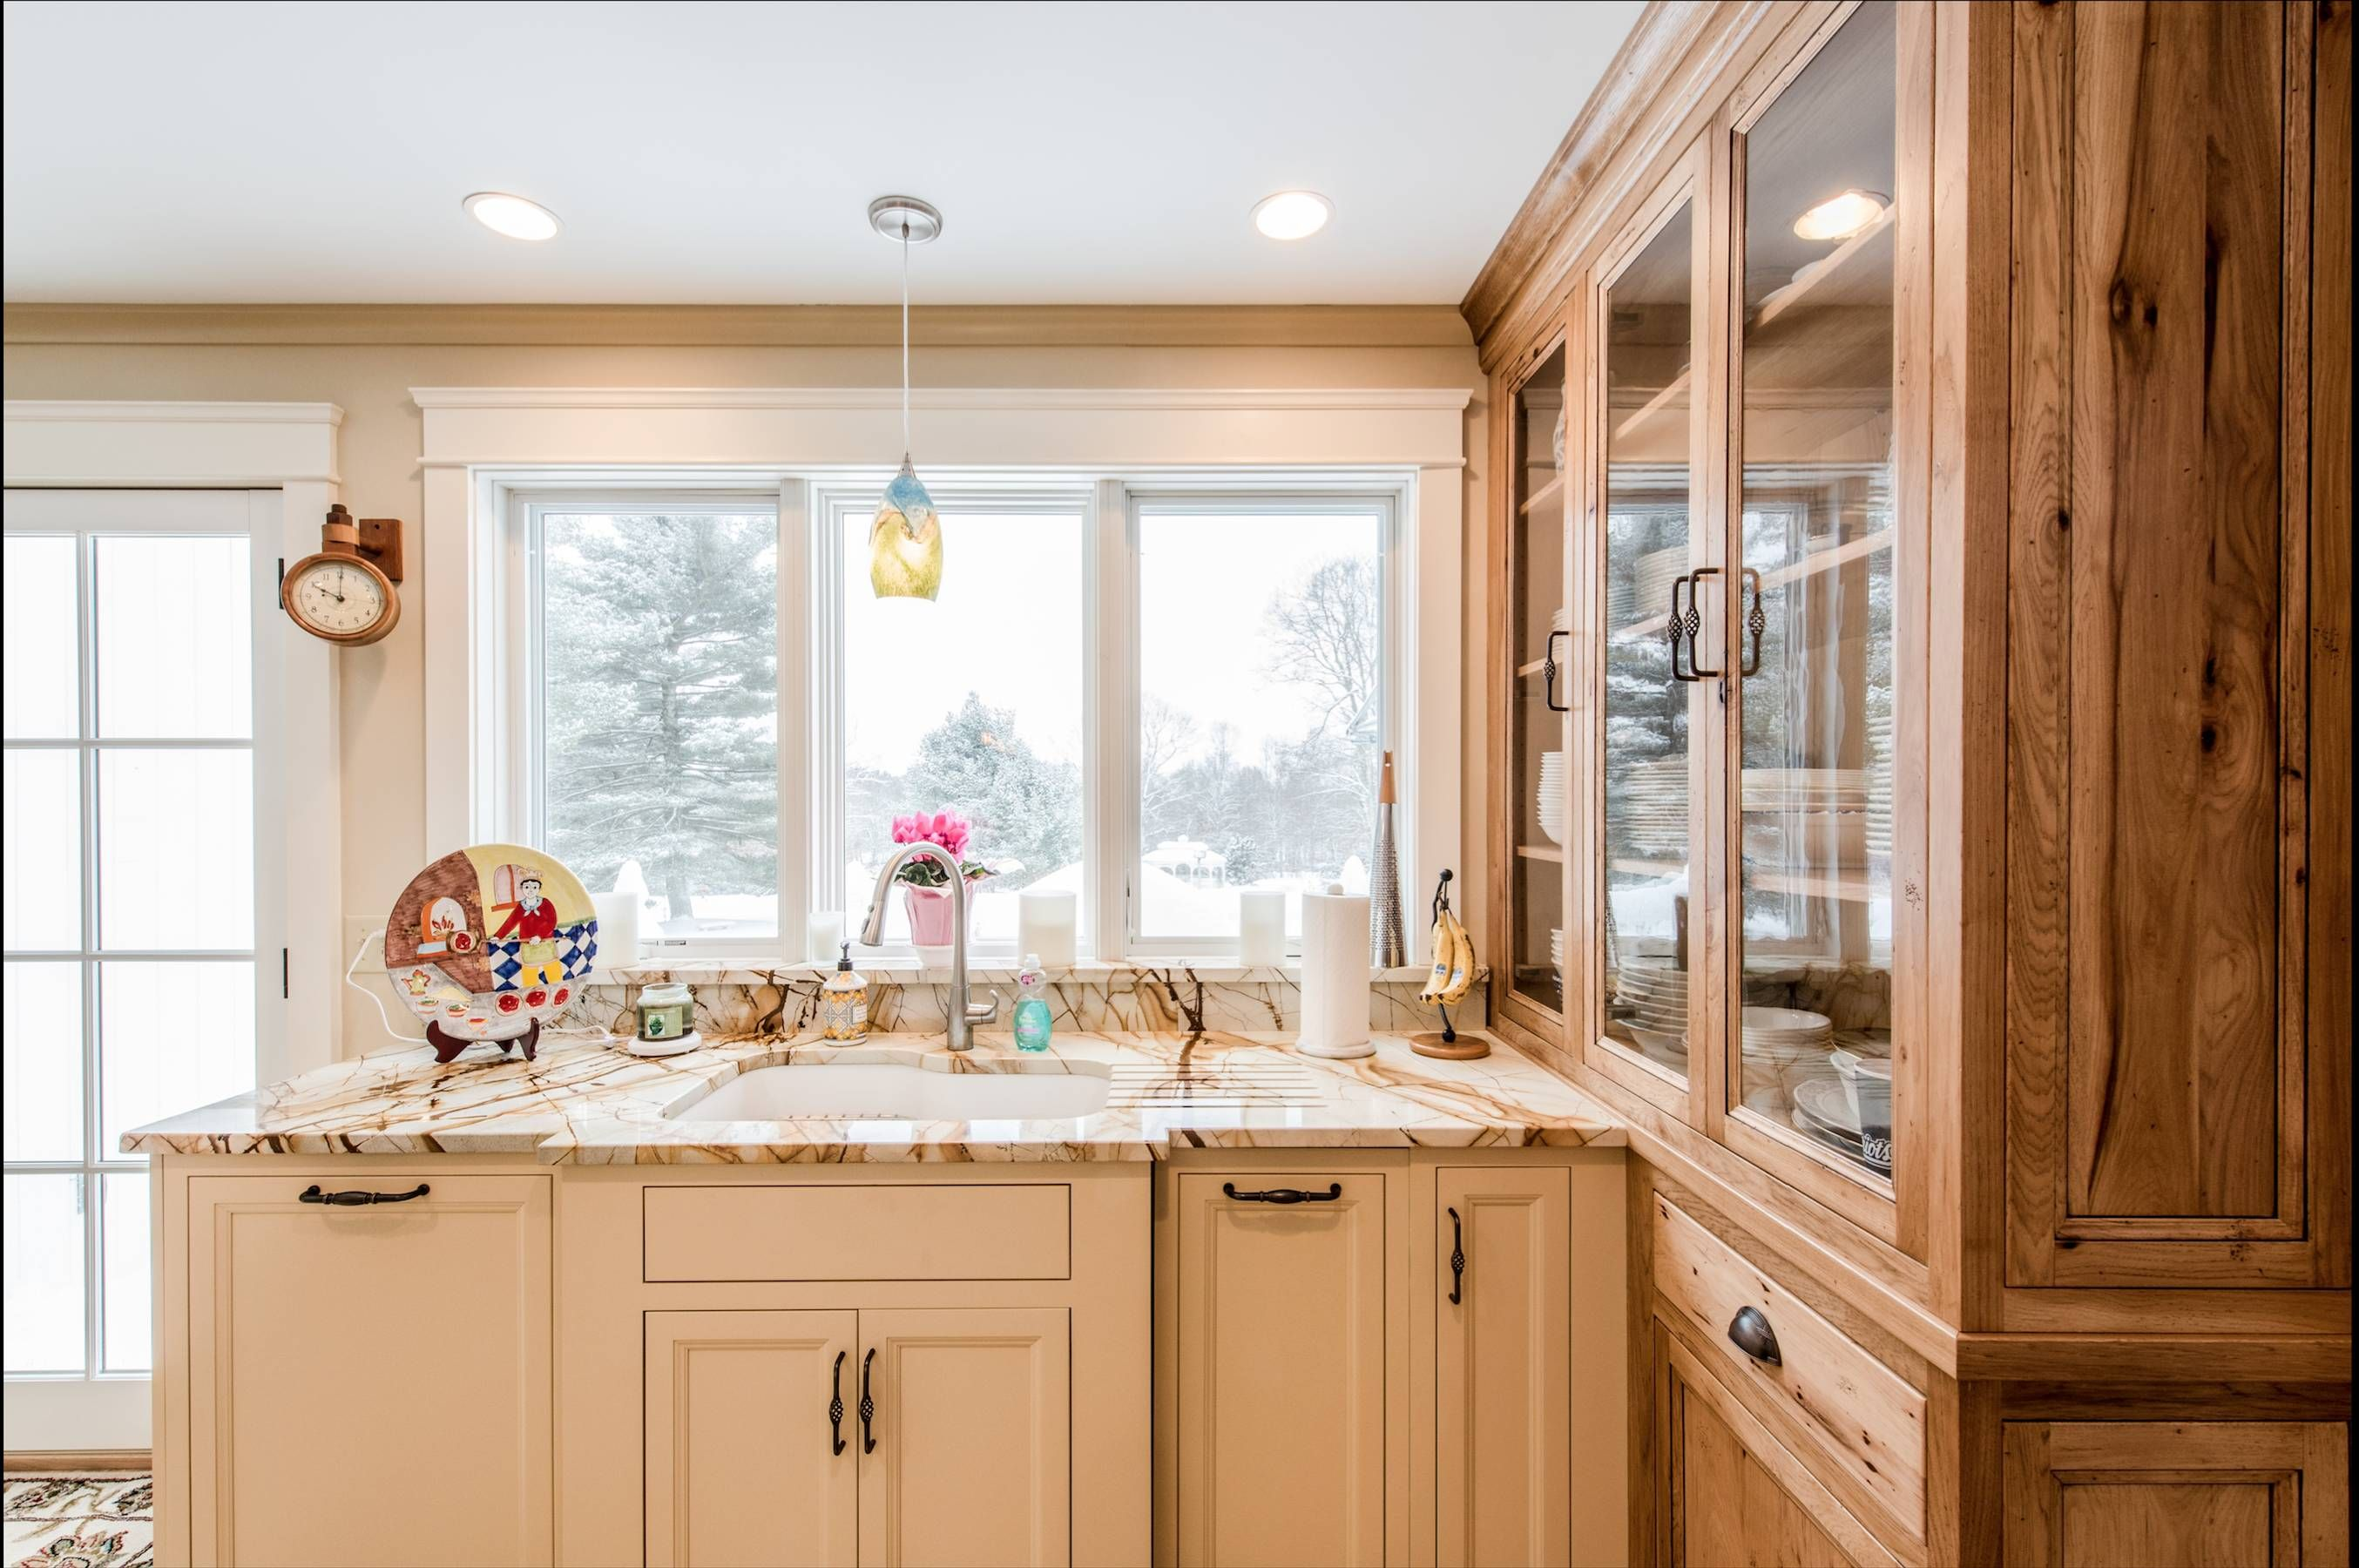 knotty pine cabinets wood house interieur architect living instagood k lifestyle m on r kitchen cabinets id=37104